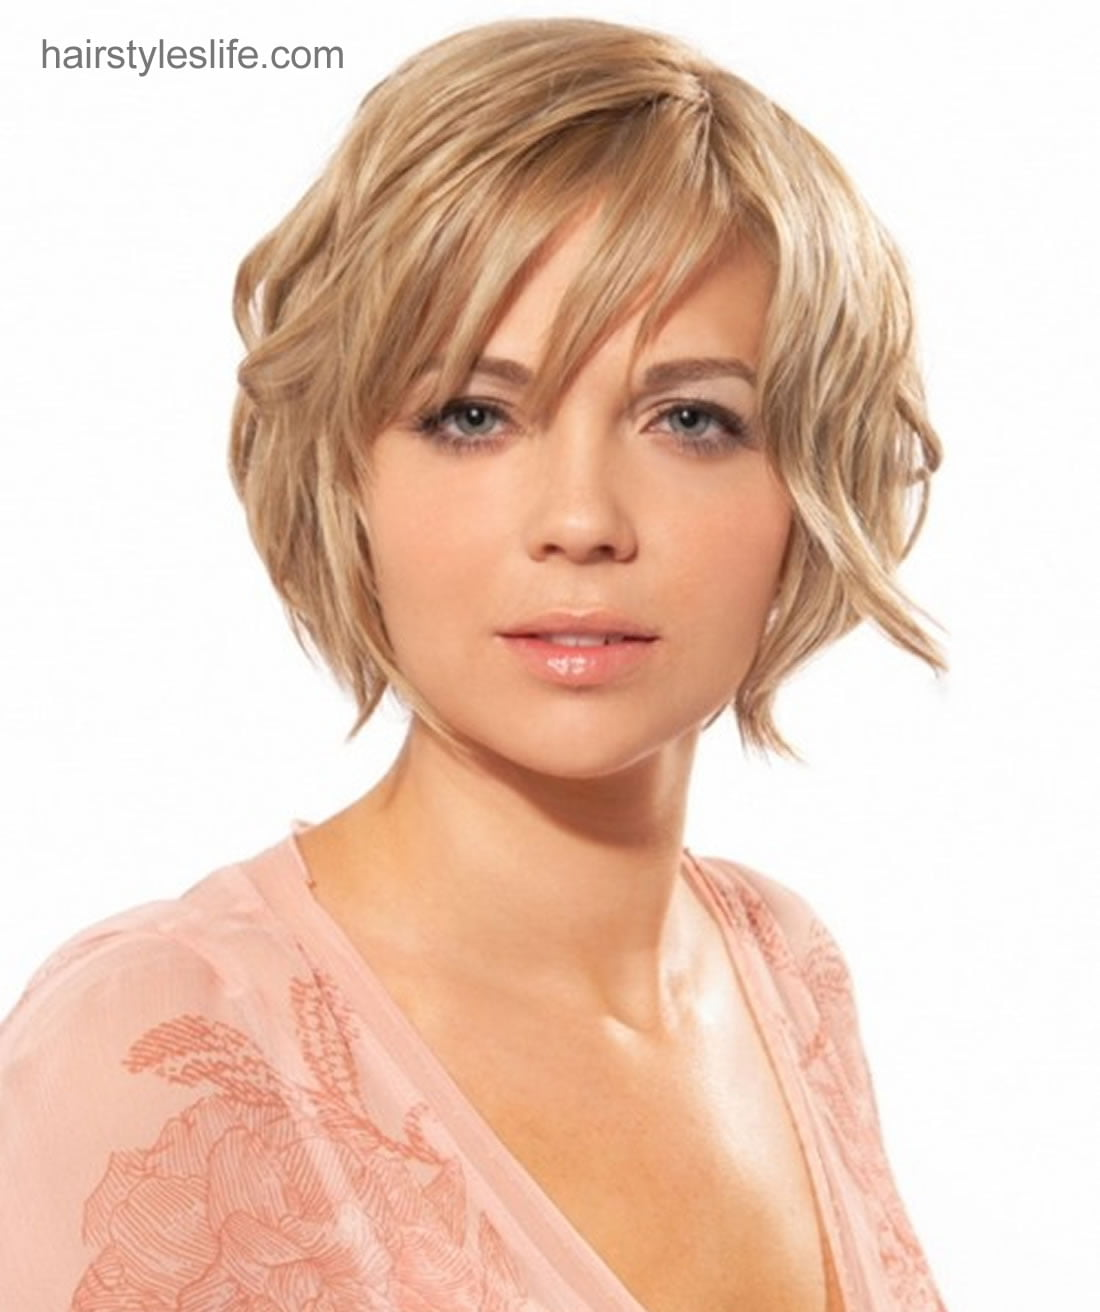 female haircut trends 2018 | 44 smart shoulder length hairstyles